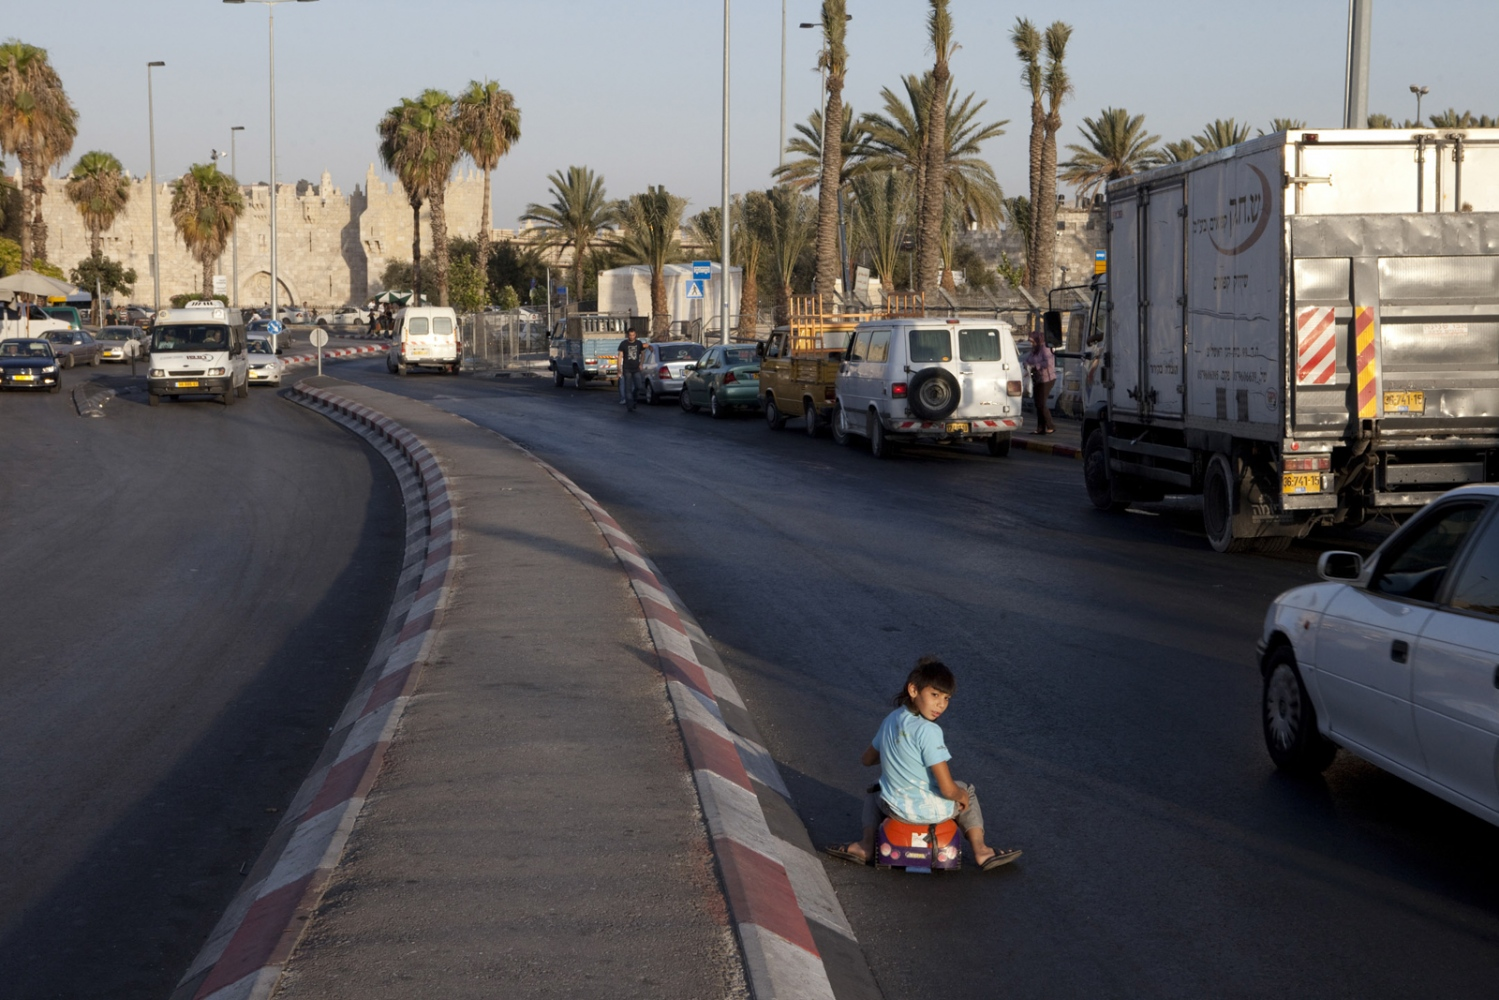 The Damascus Gate of Jerusalem's Old City marks the beginning of Palestinian East Jerusalem. The Child in the road sits on the old Jordanian front line, to his right, 100 metres of no-man's land, before Jewish West Jerusalem.